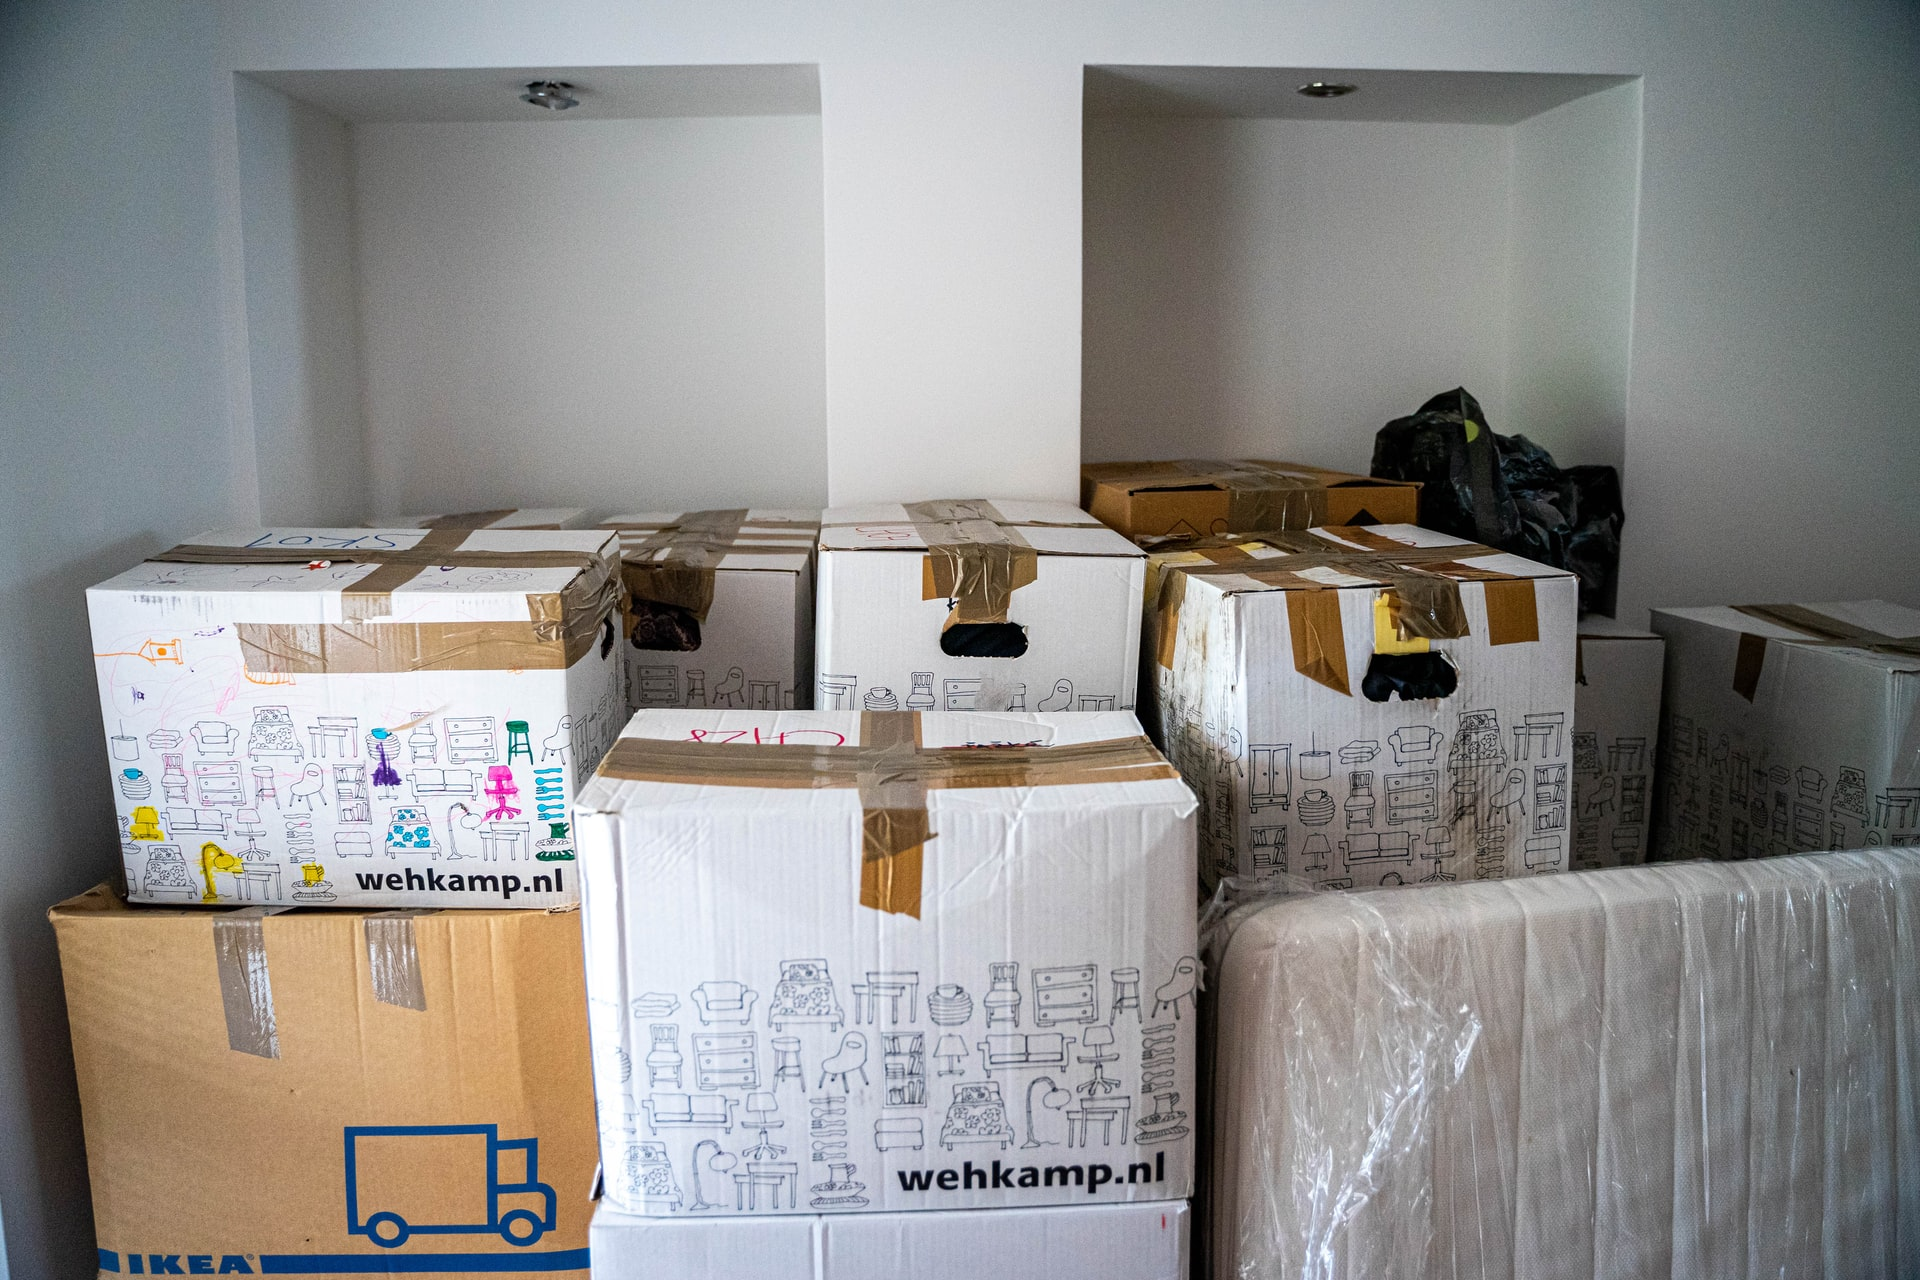 Packed, taped, and stacked cardboard boxes. Photo courtesy of Michal Balog on Unsplash.